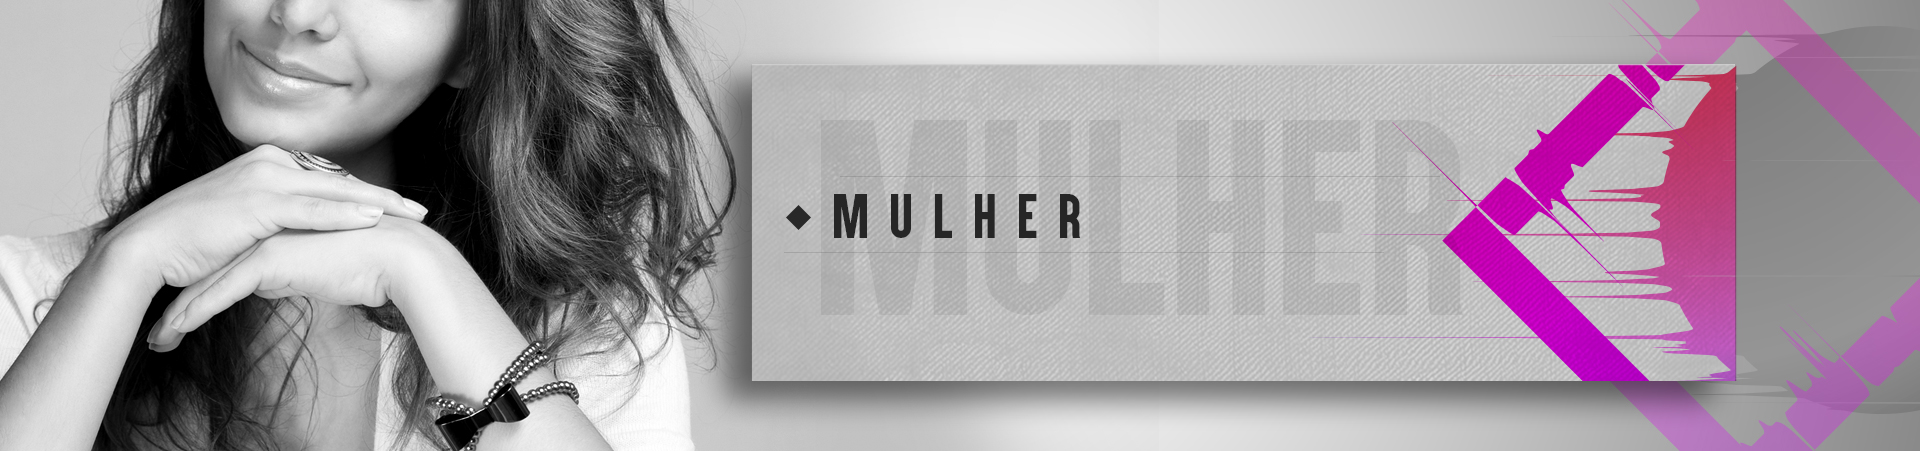 BANNER MULHER